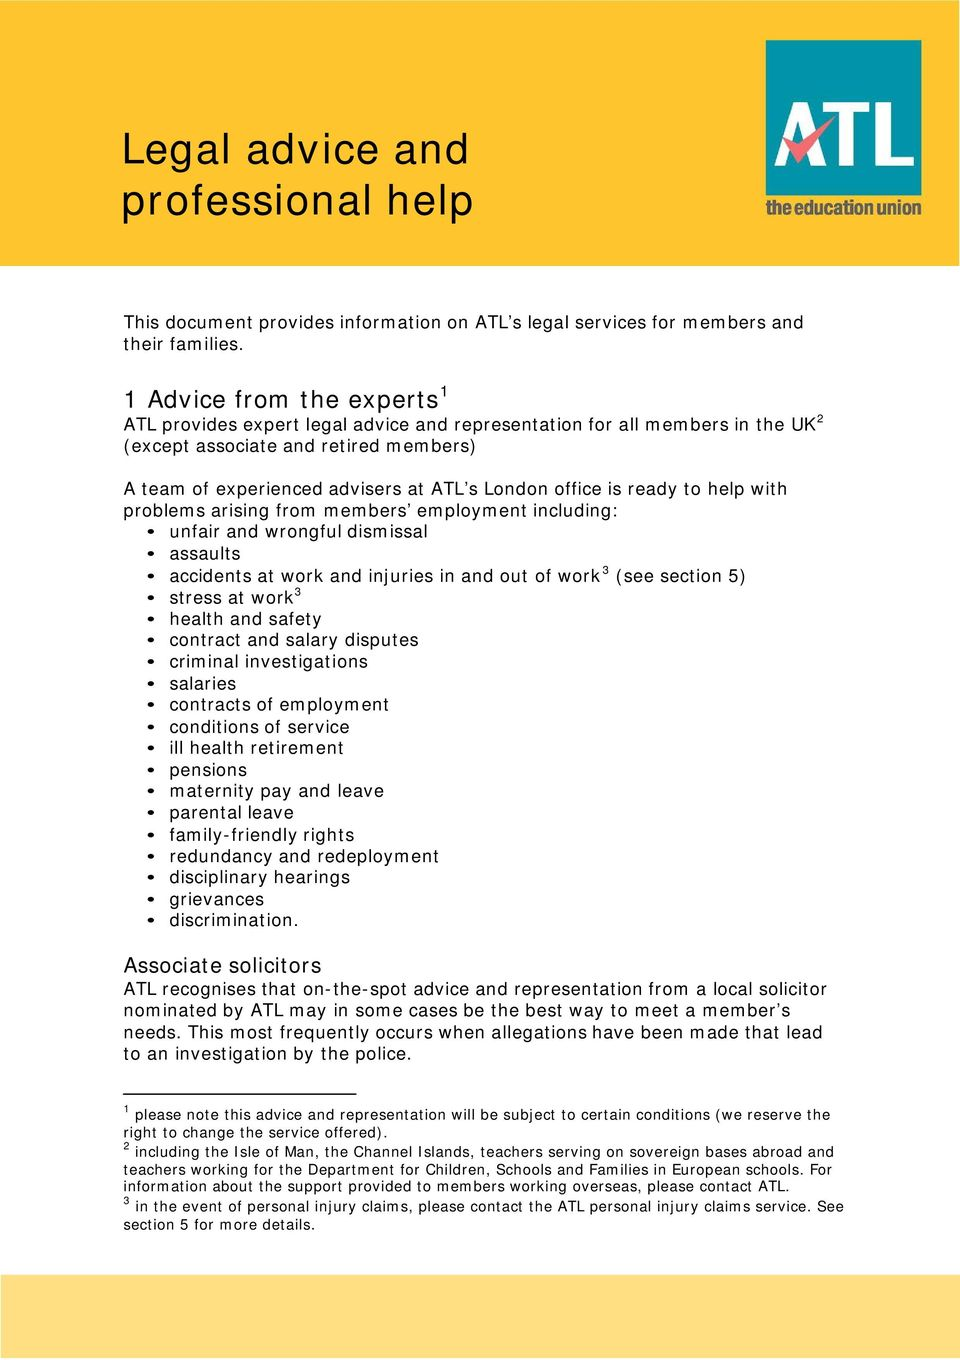 office is ready to help with problems arising from members employment including: unfair and wrongful dismissal assaults accidents at work and injuries in and out of work 3 (see section 5) stress at